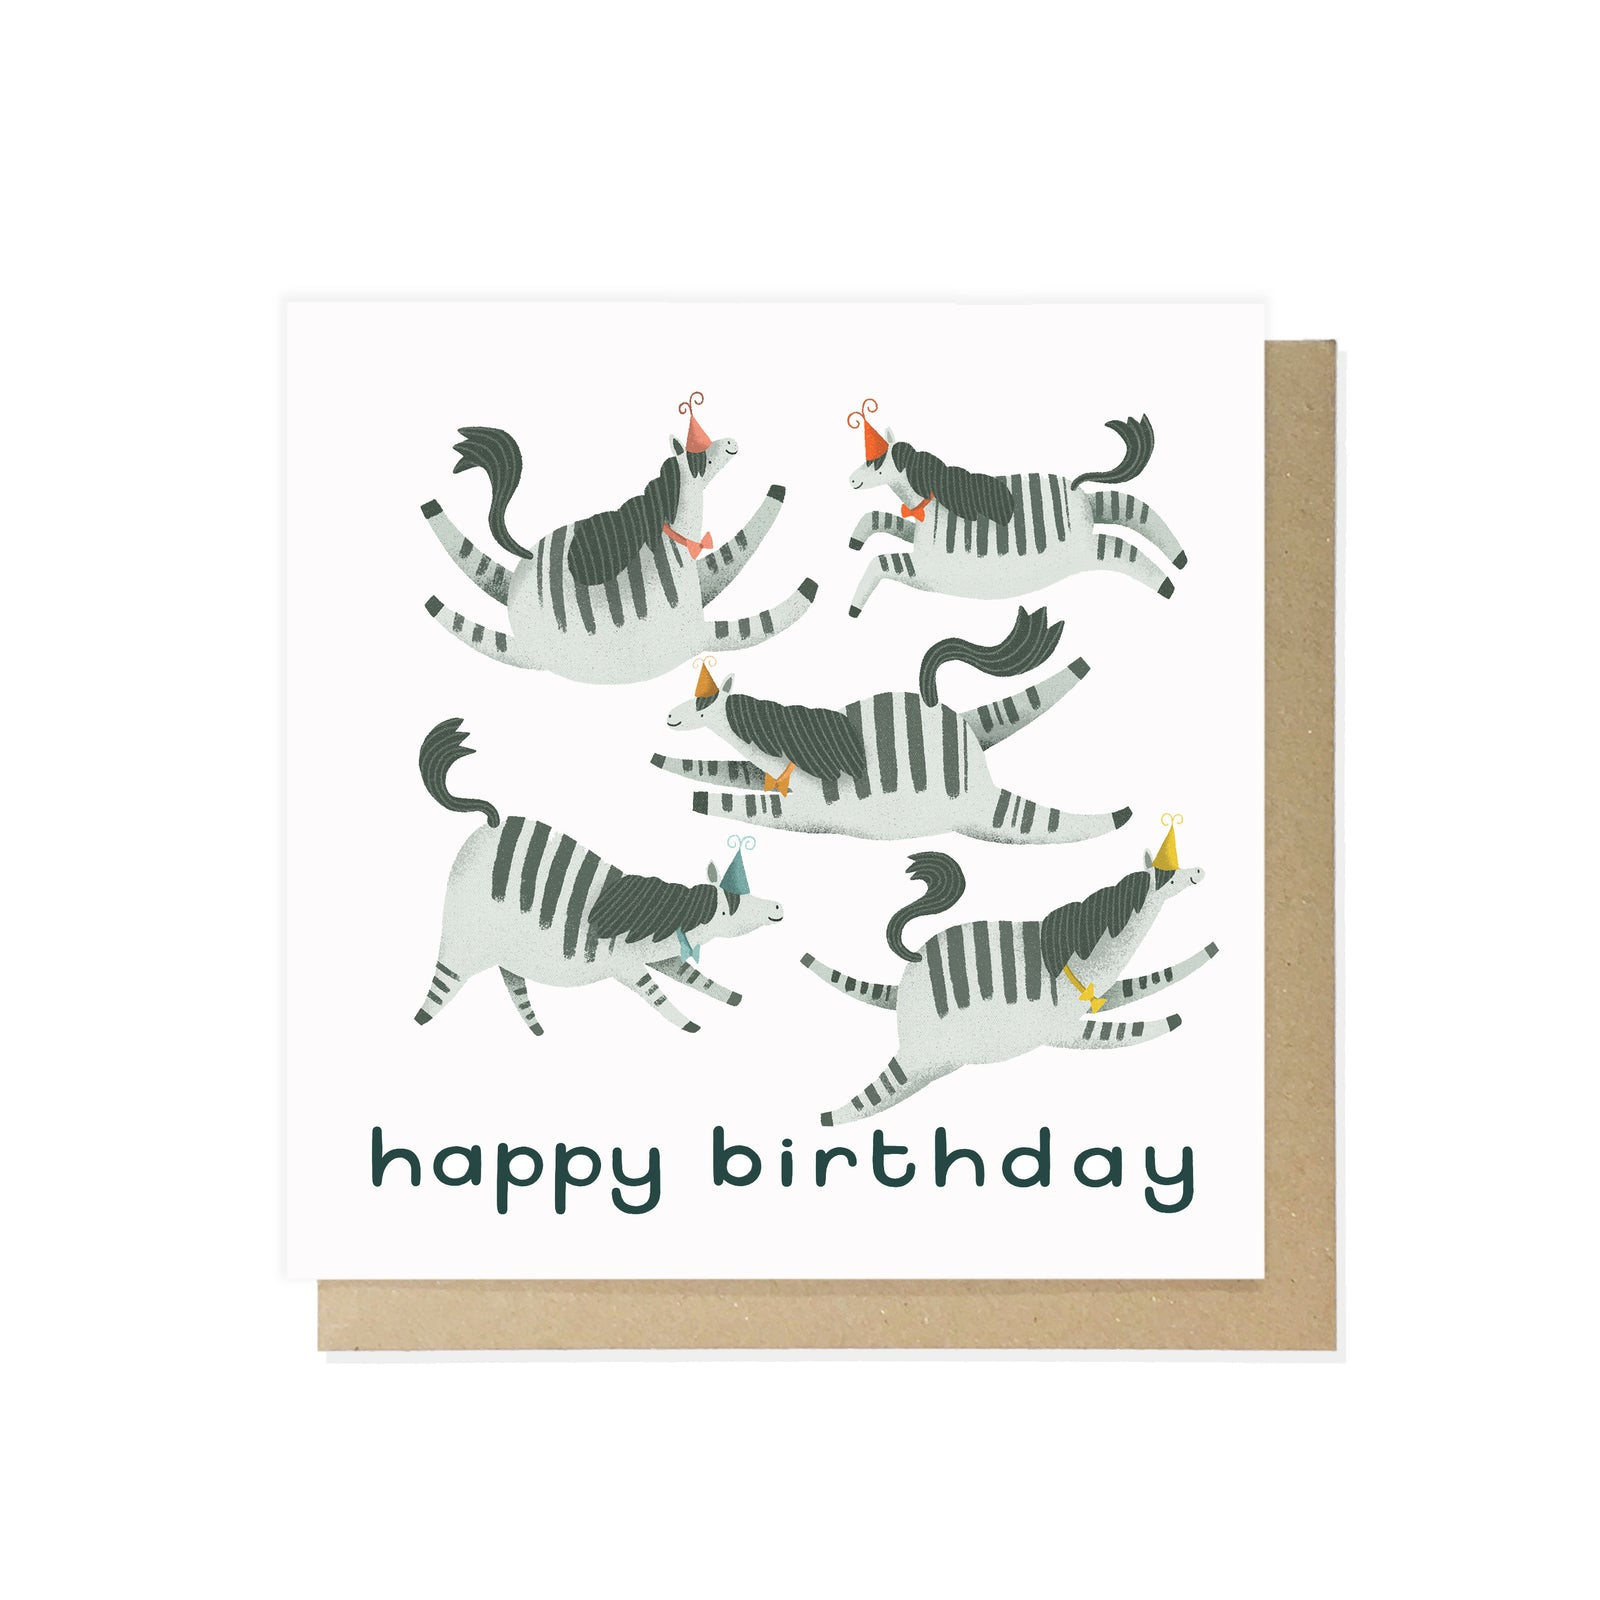 Happy Birthday Zebra by Lauren Radley